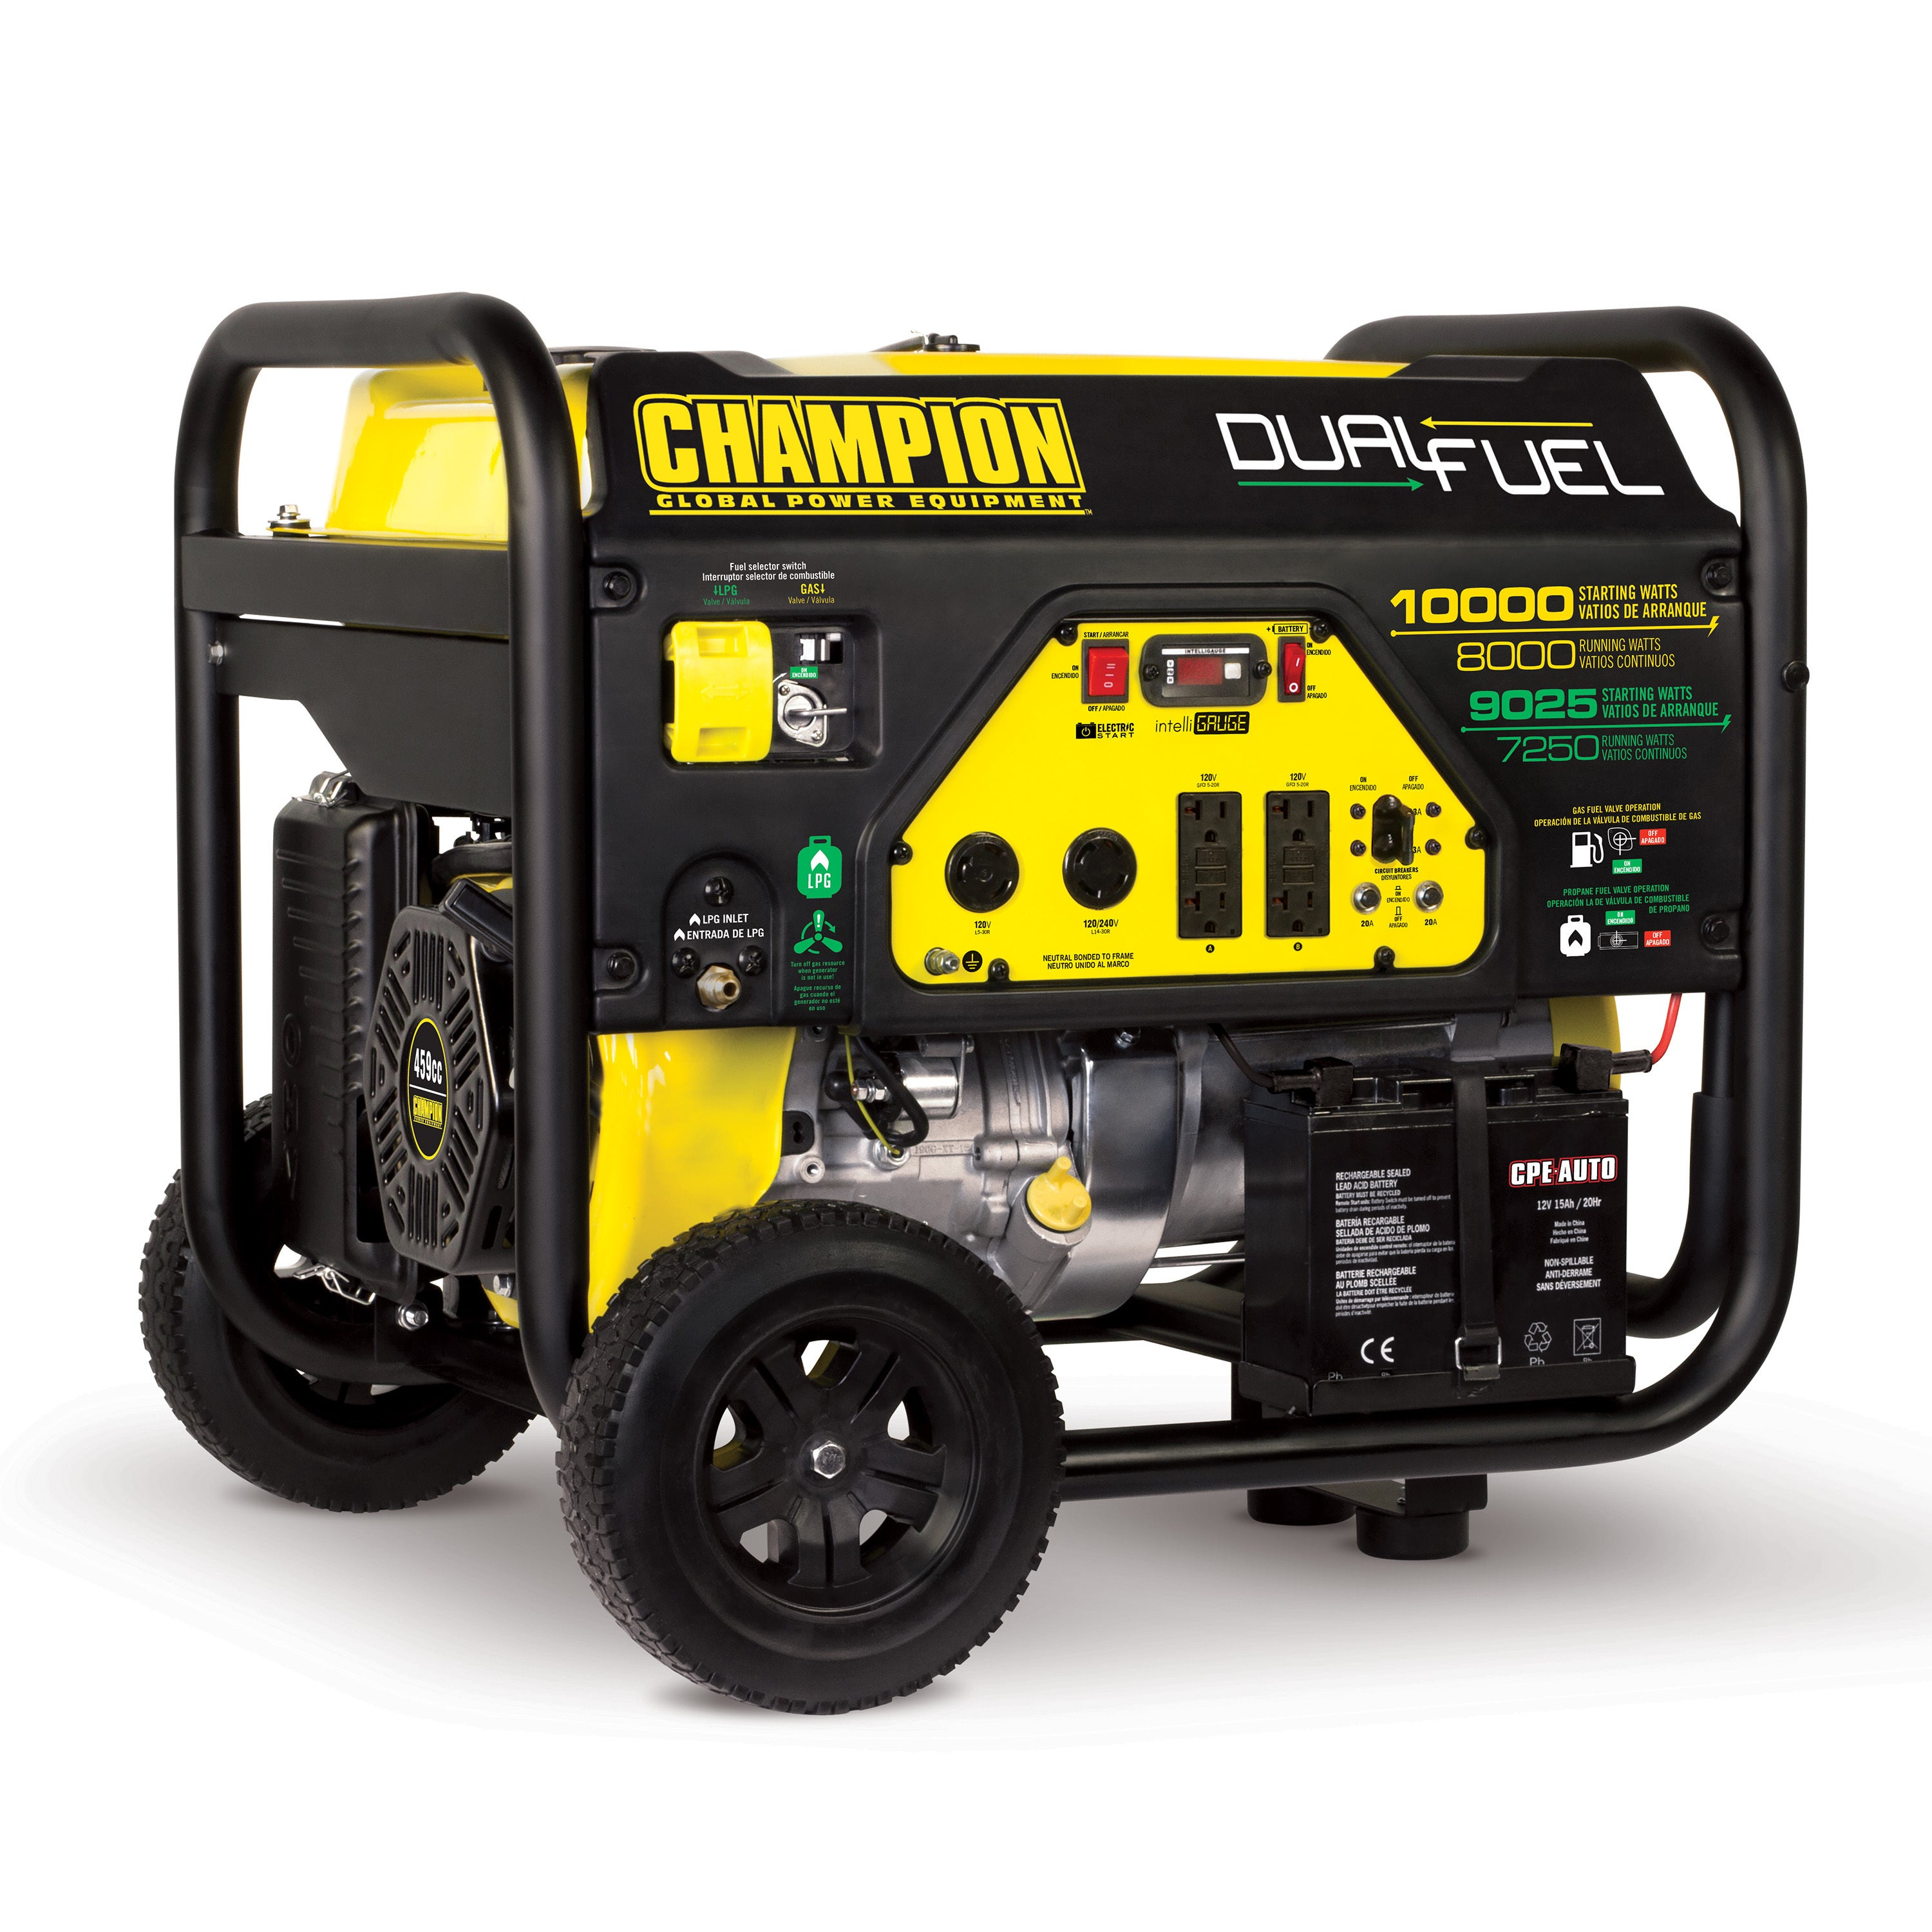 Champion 8000 Watt Dual Fuel Portable Generator with Electric